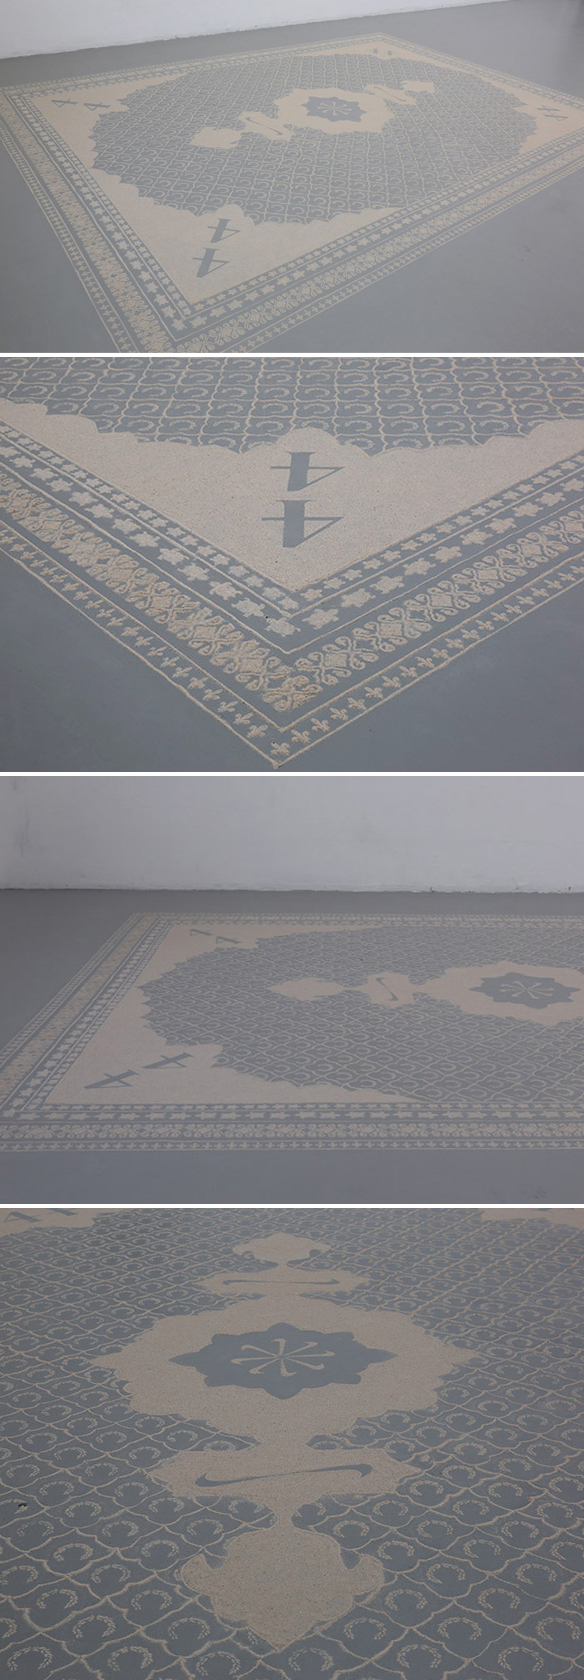 Sand. It's SAND. The artist, Daniëlle van Ark,spent 5 weeks in residency creating these intricate sand patterns on the floor and when the exhibition was over - poof - is if they were never there. The subdued color palette lends to the ghostly effect. Good stuff.